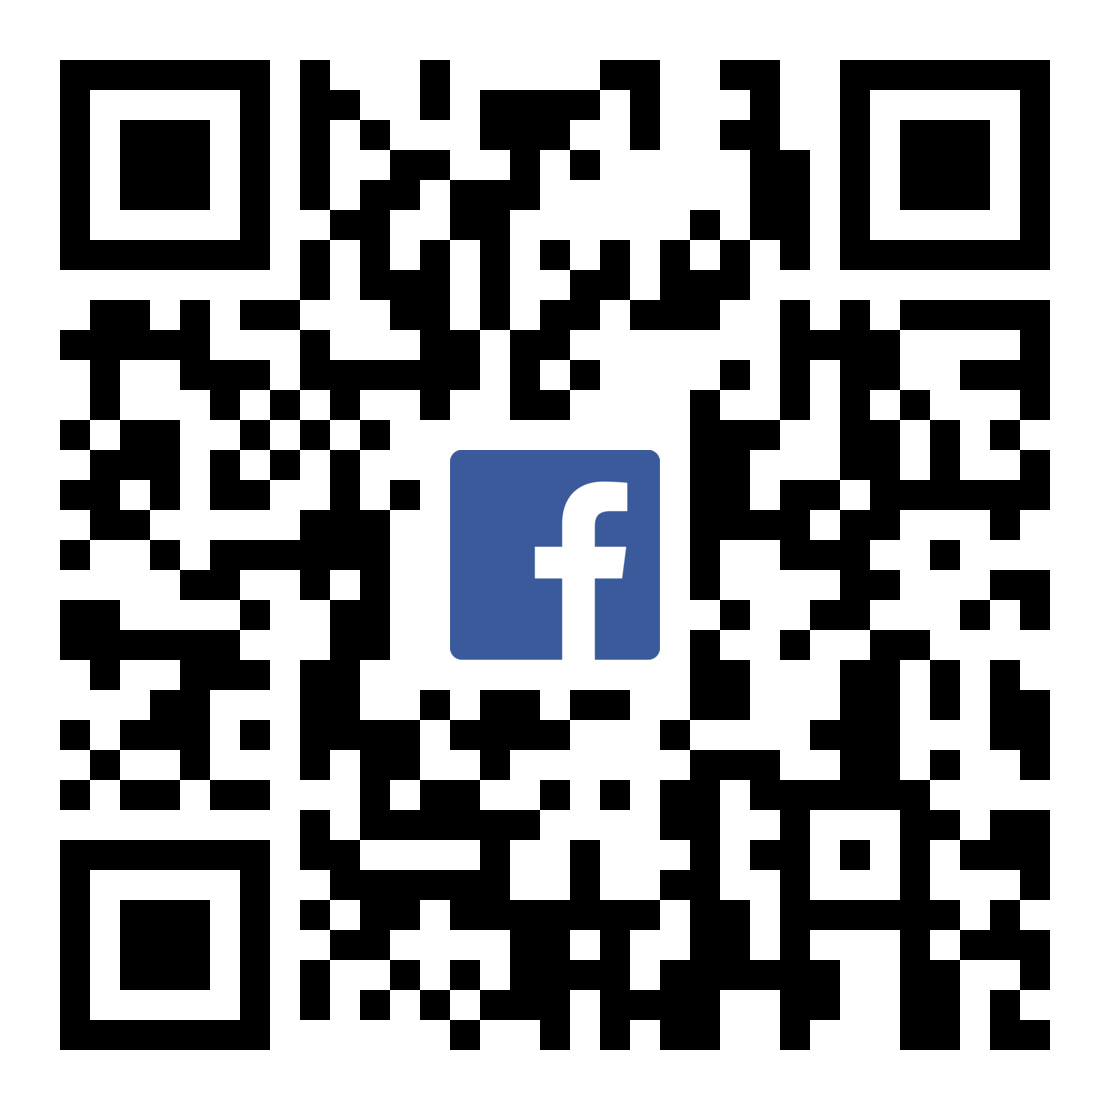 Unity Auction & Celebration 2018 Facebook Event QR Code